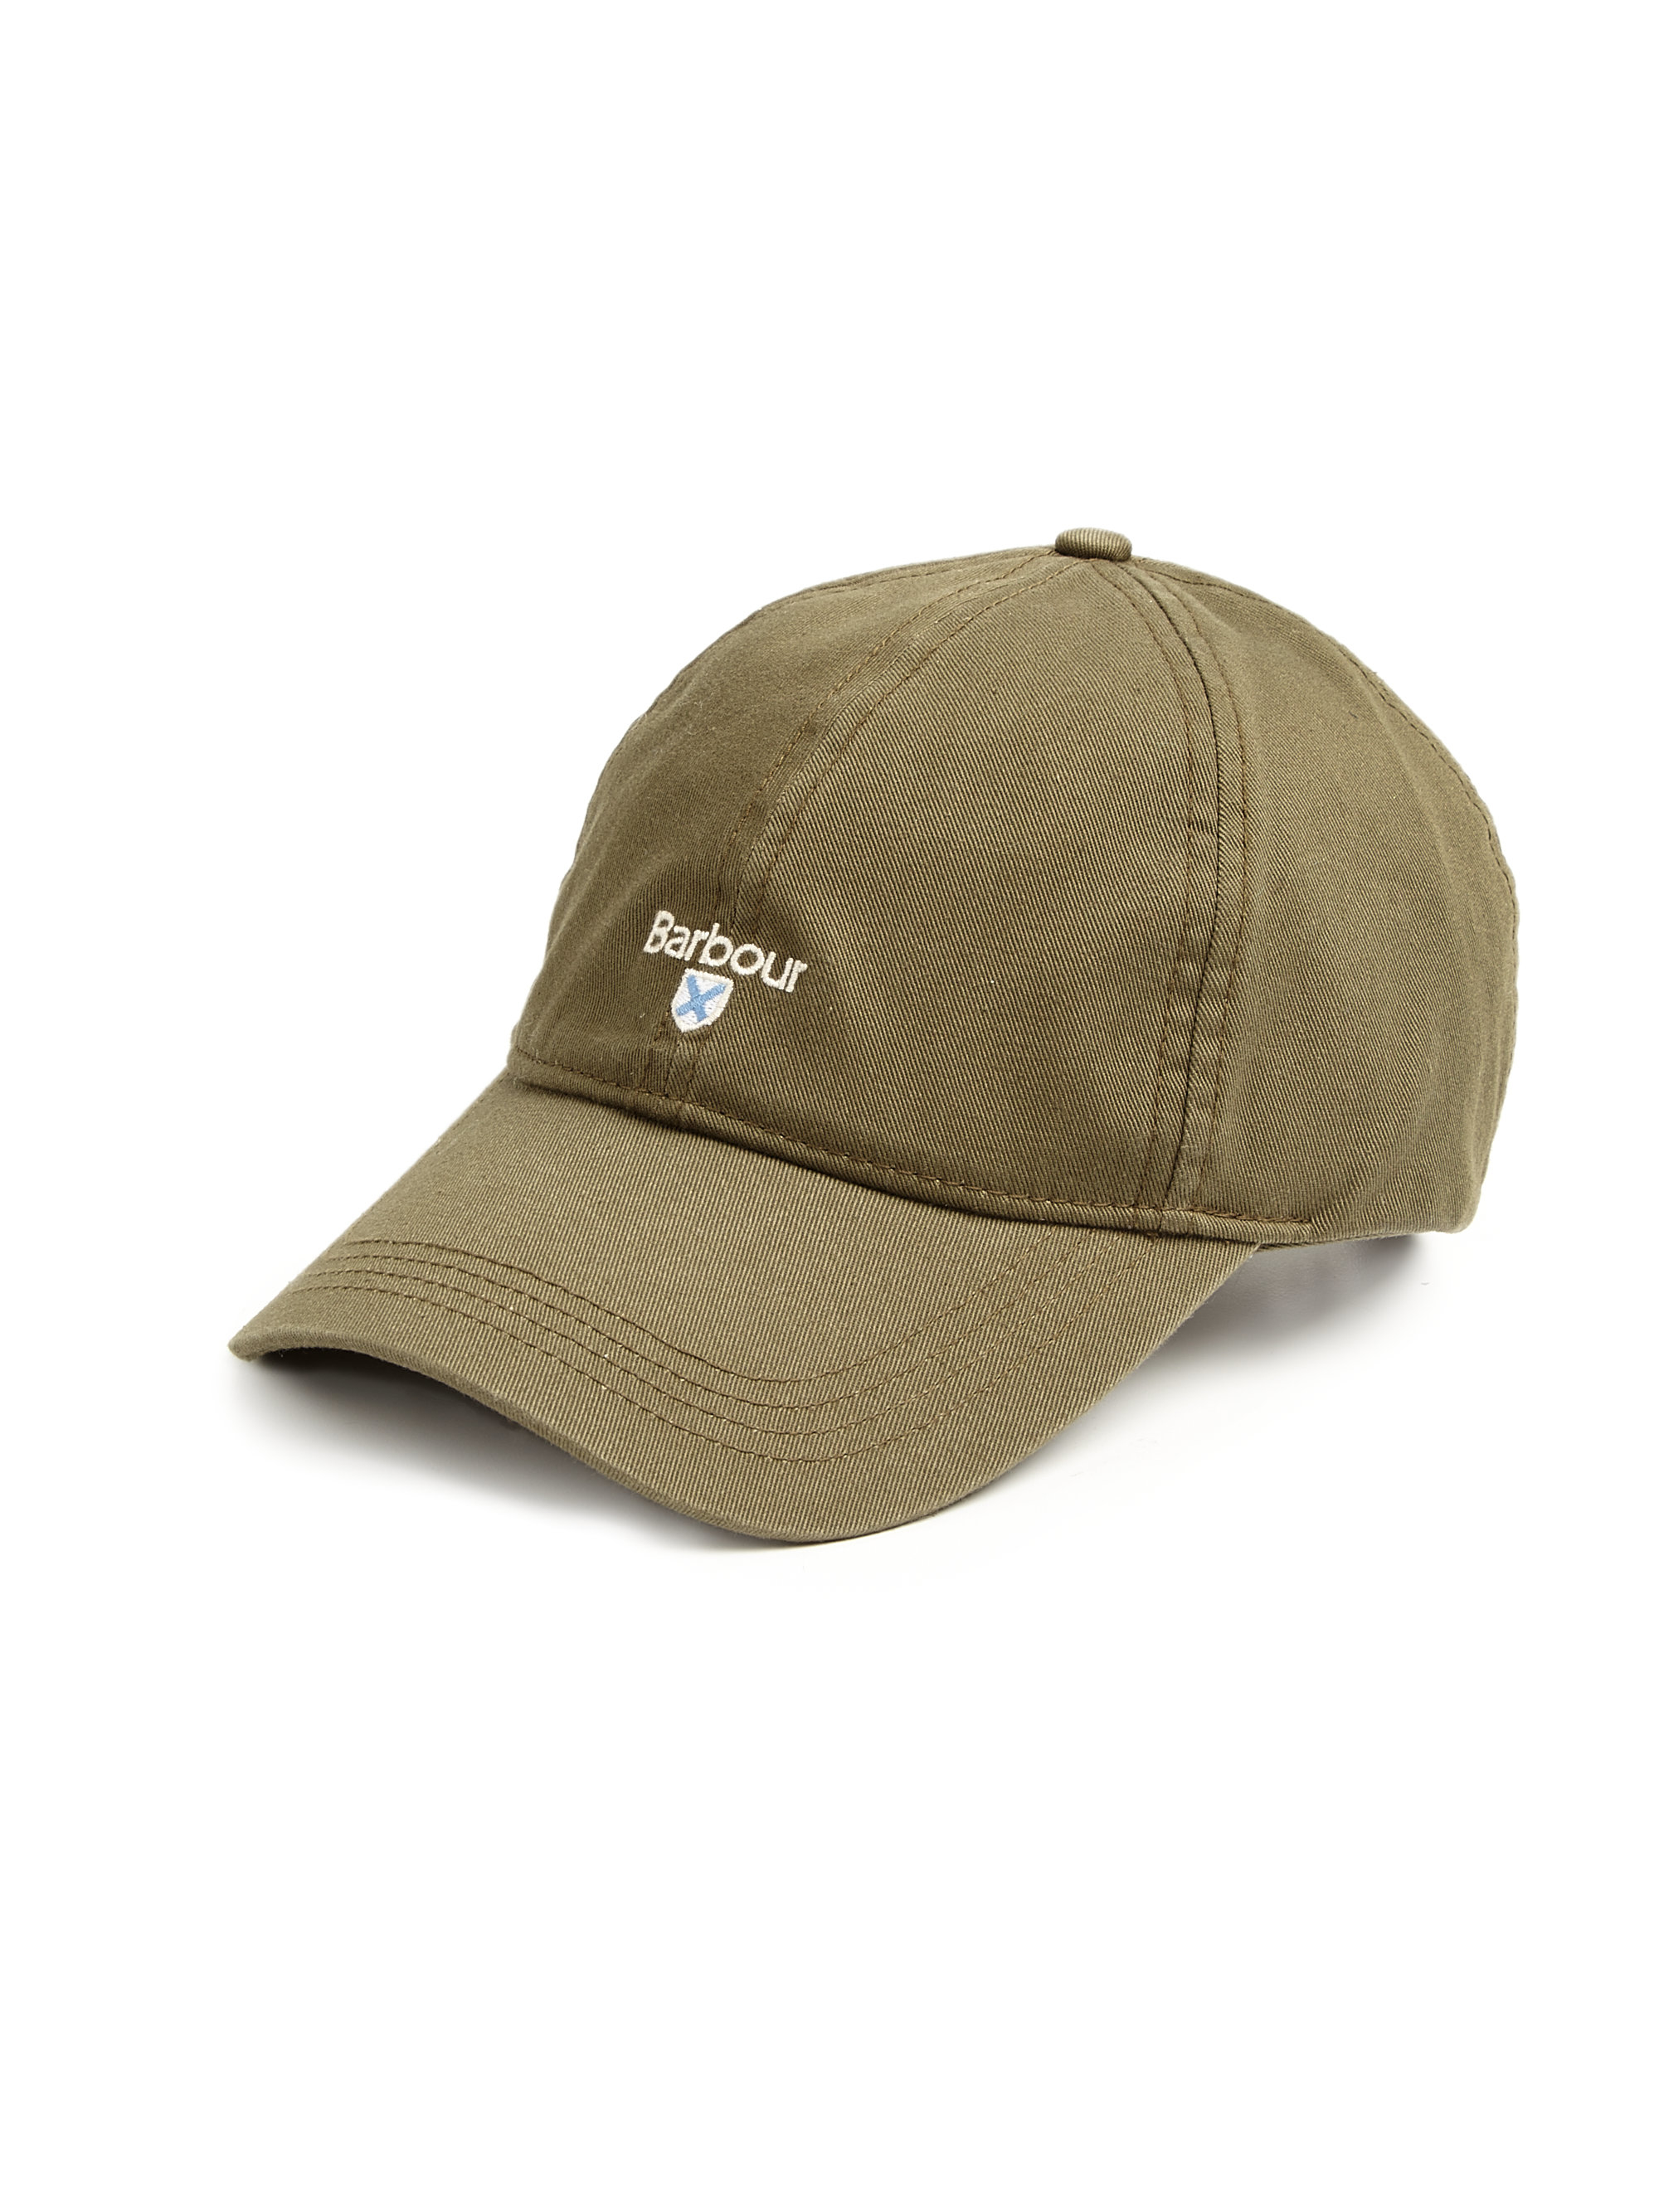 Lyst - Barbour Men s Cascade Sports Cap in Green for Men b4f2b21559a5